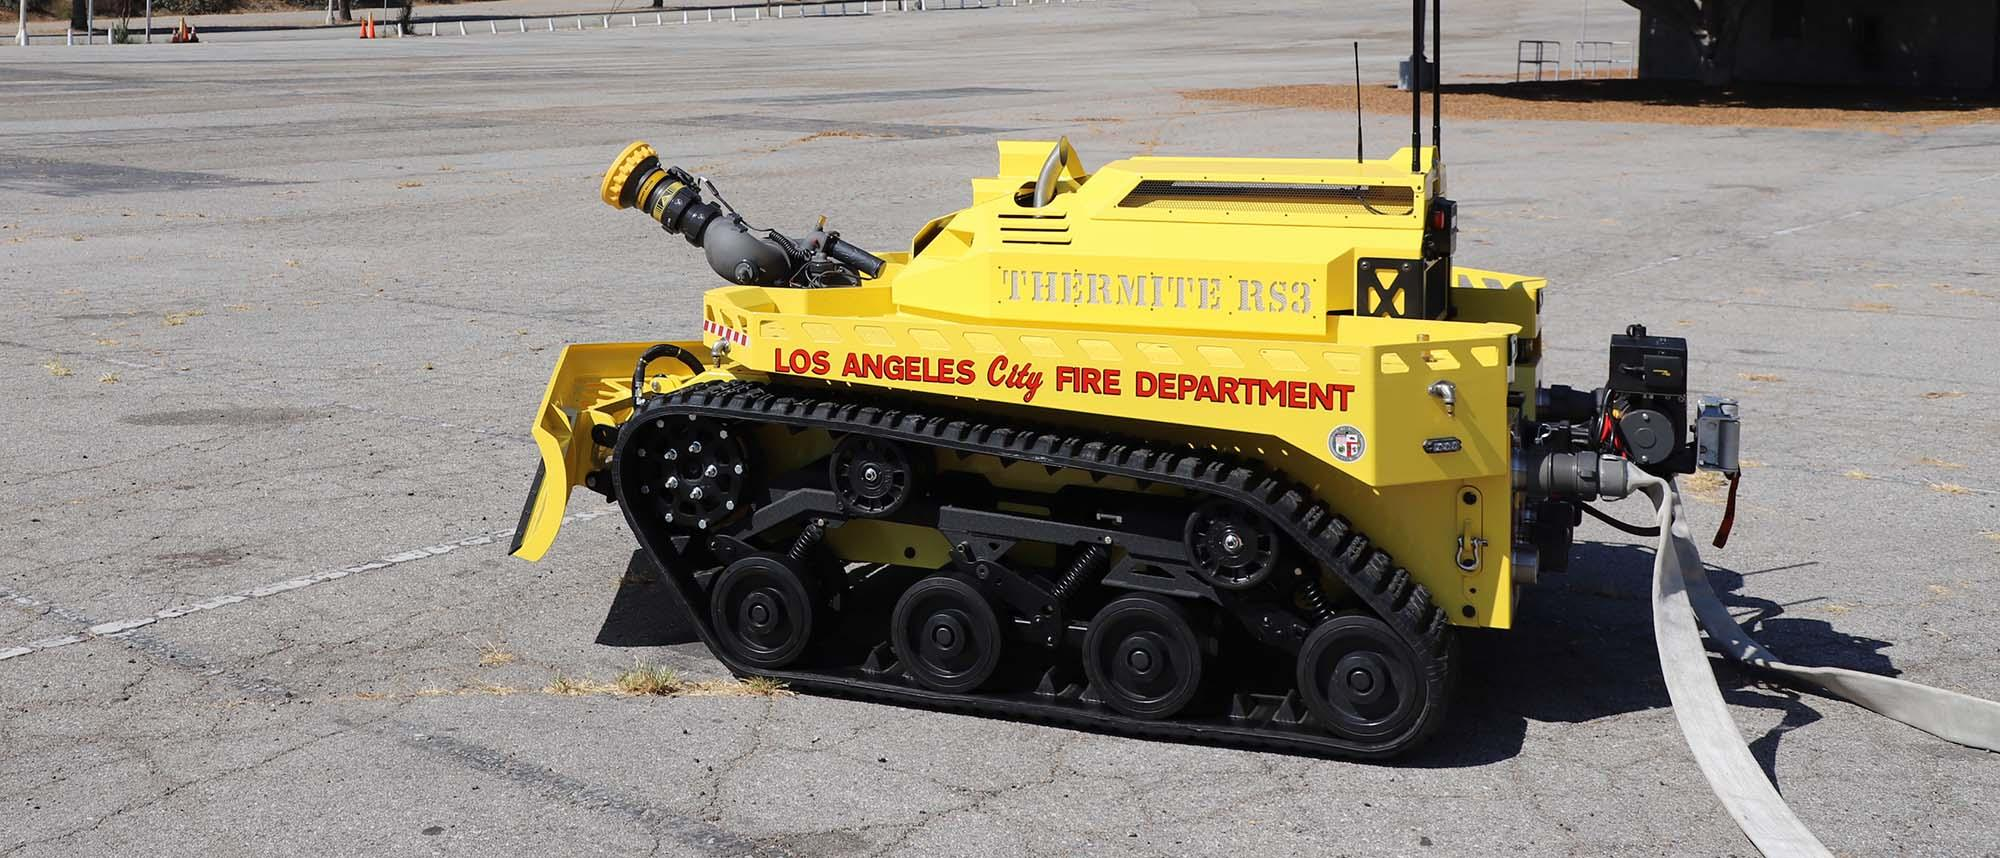 Los Angeles Fire Department Thermite RS3